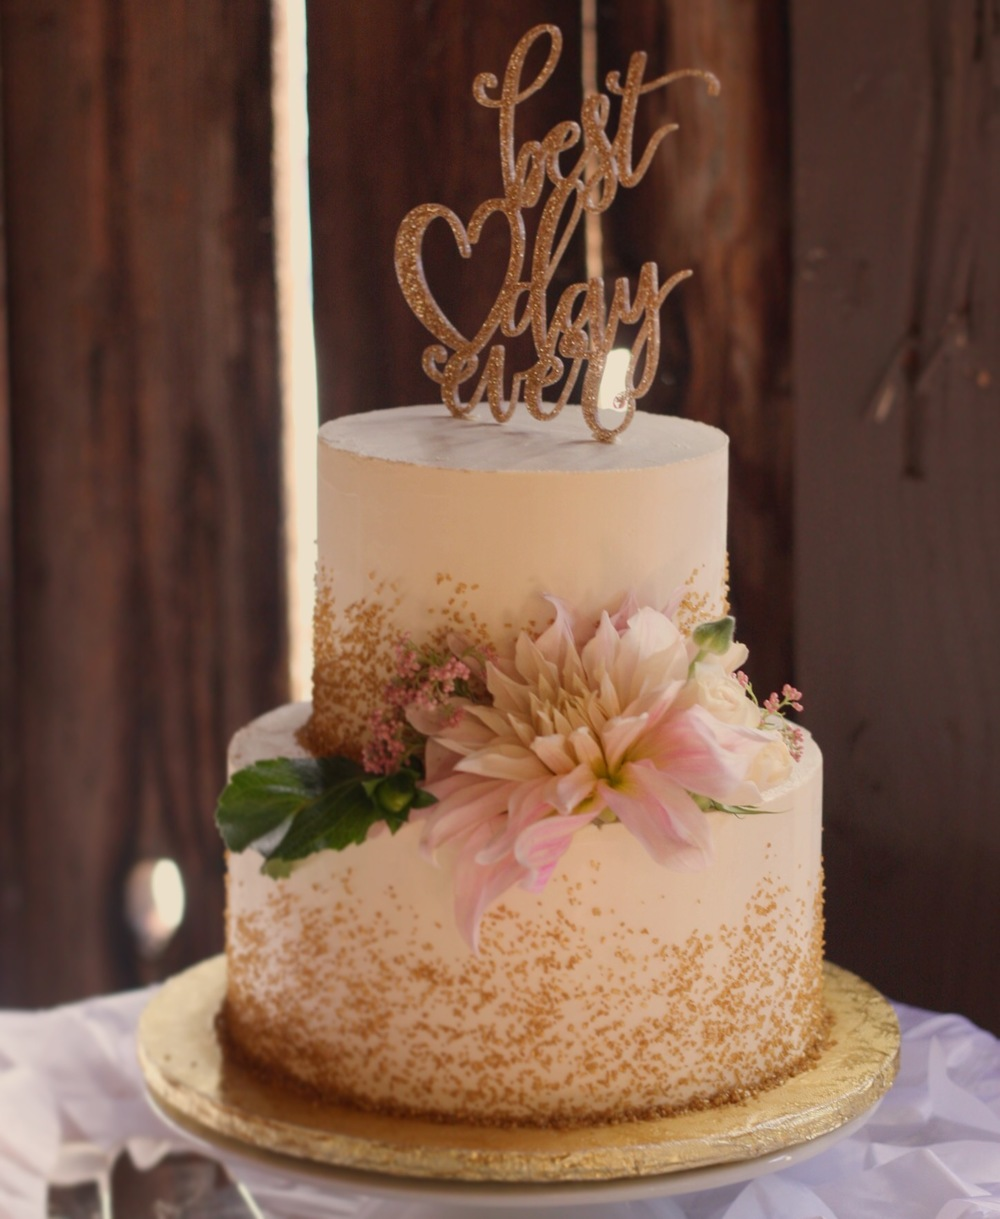 Smooth Buttercream Cake with Gold Sparkling Sugar